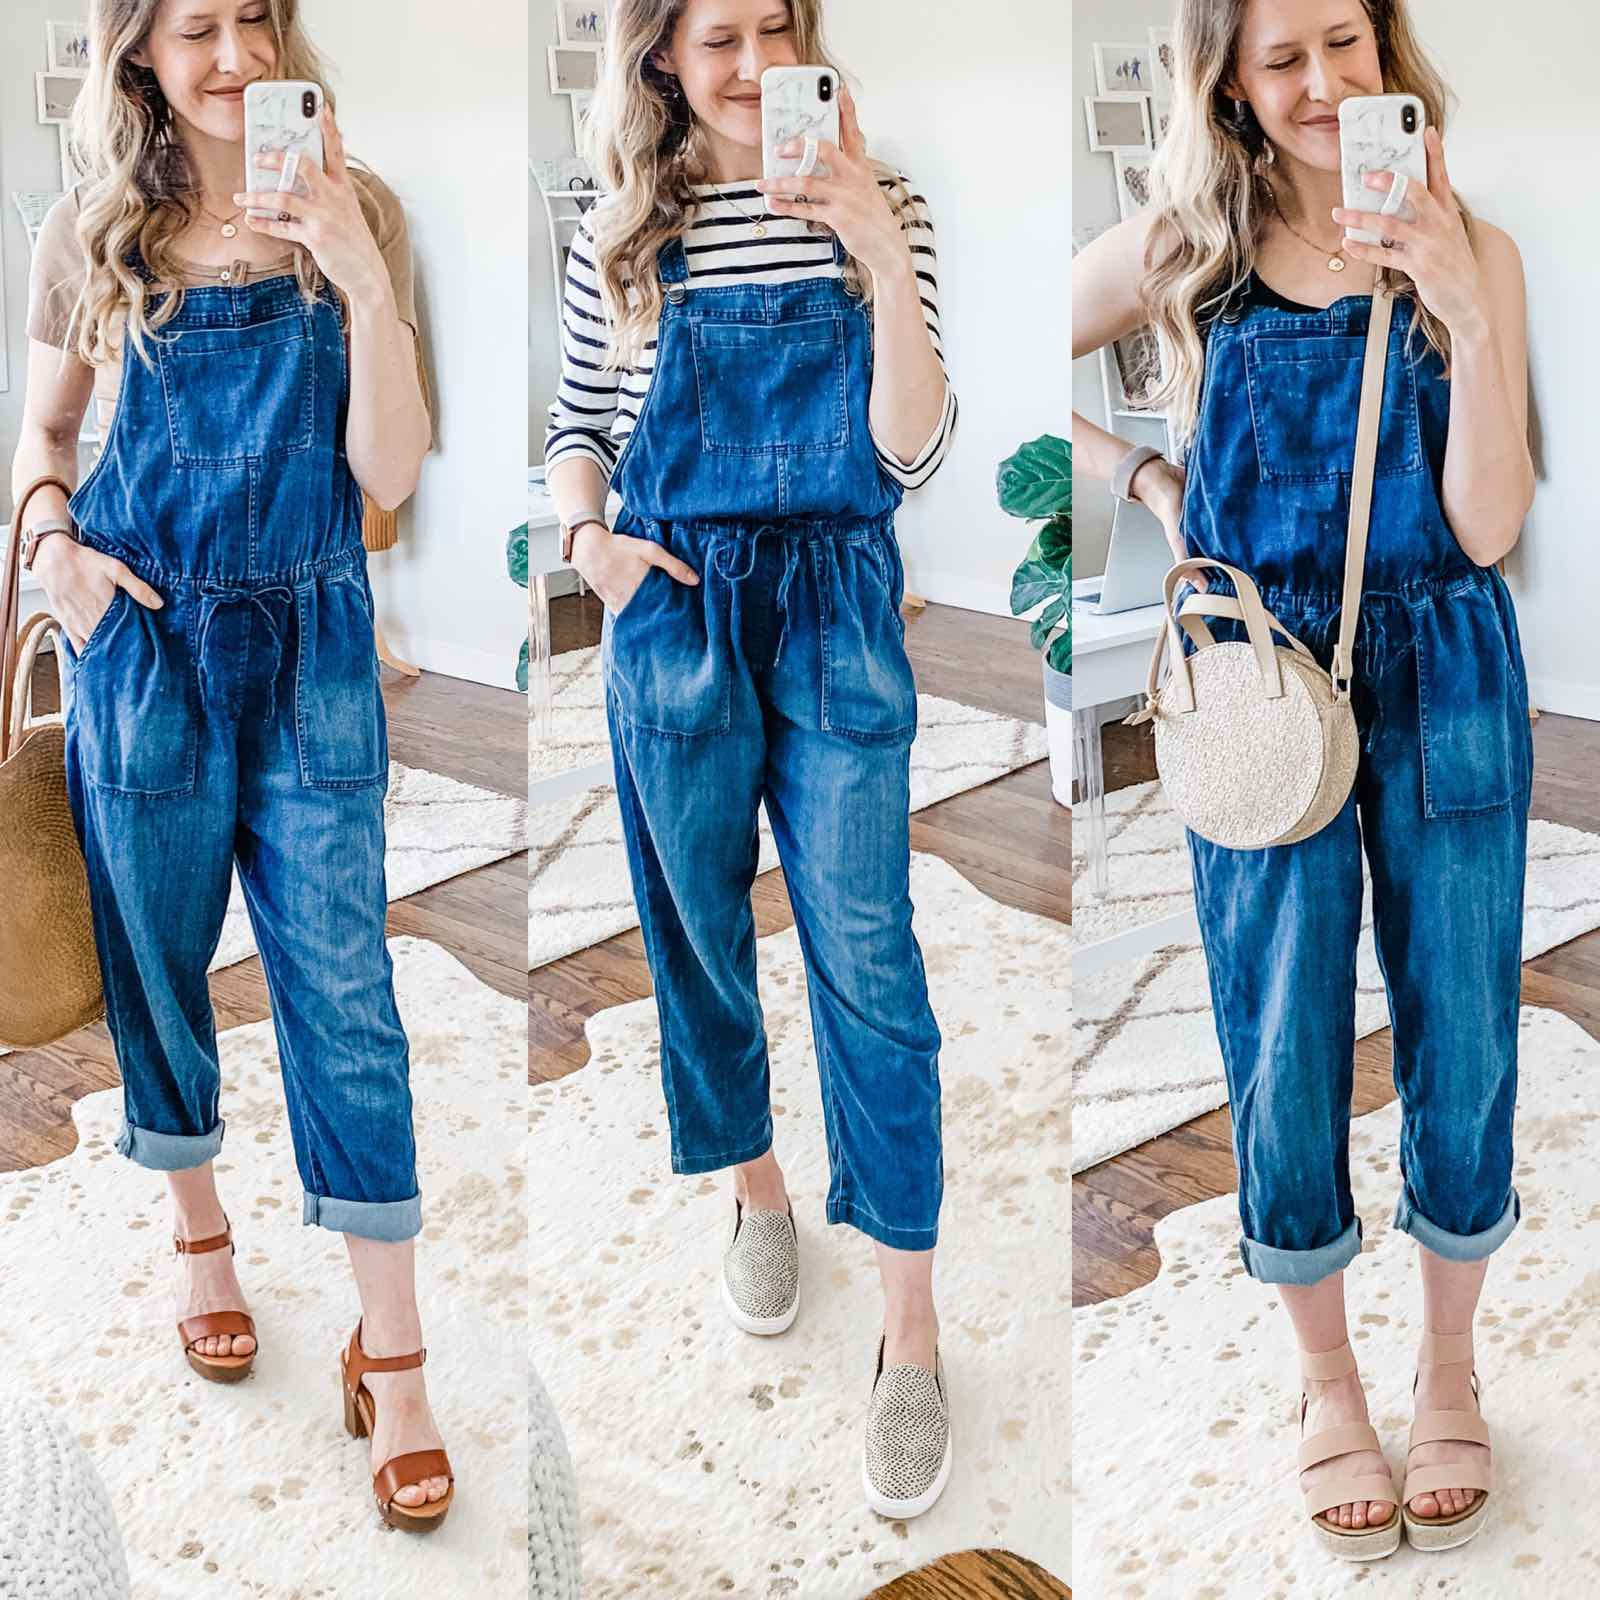 Love these overalls! $29 at Walmart